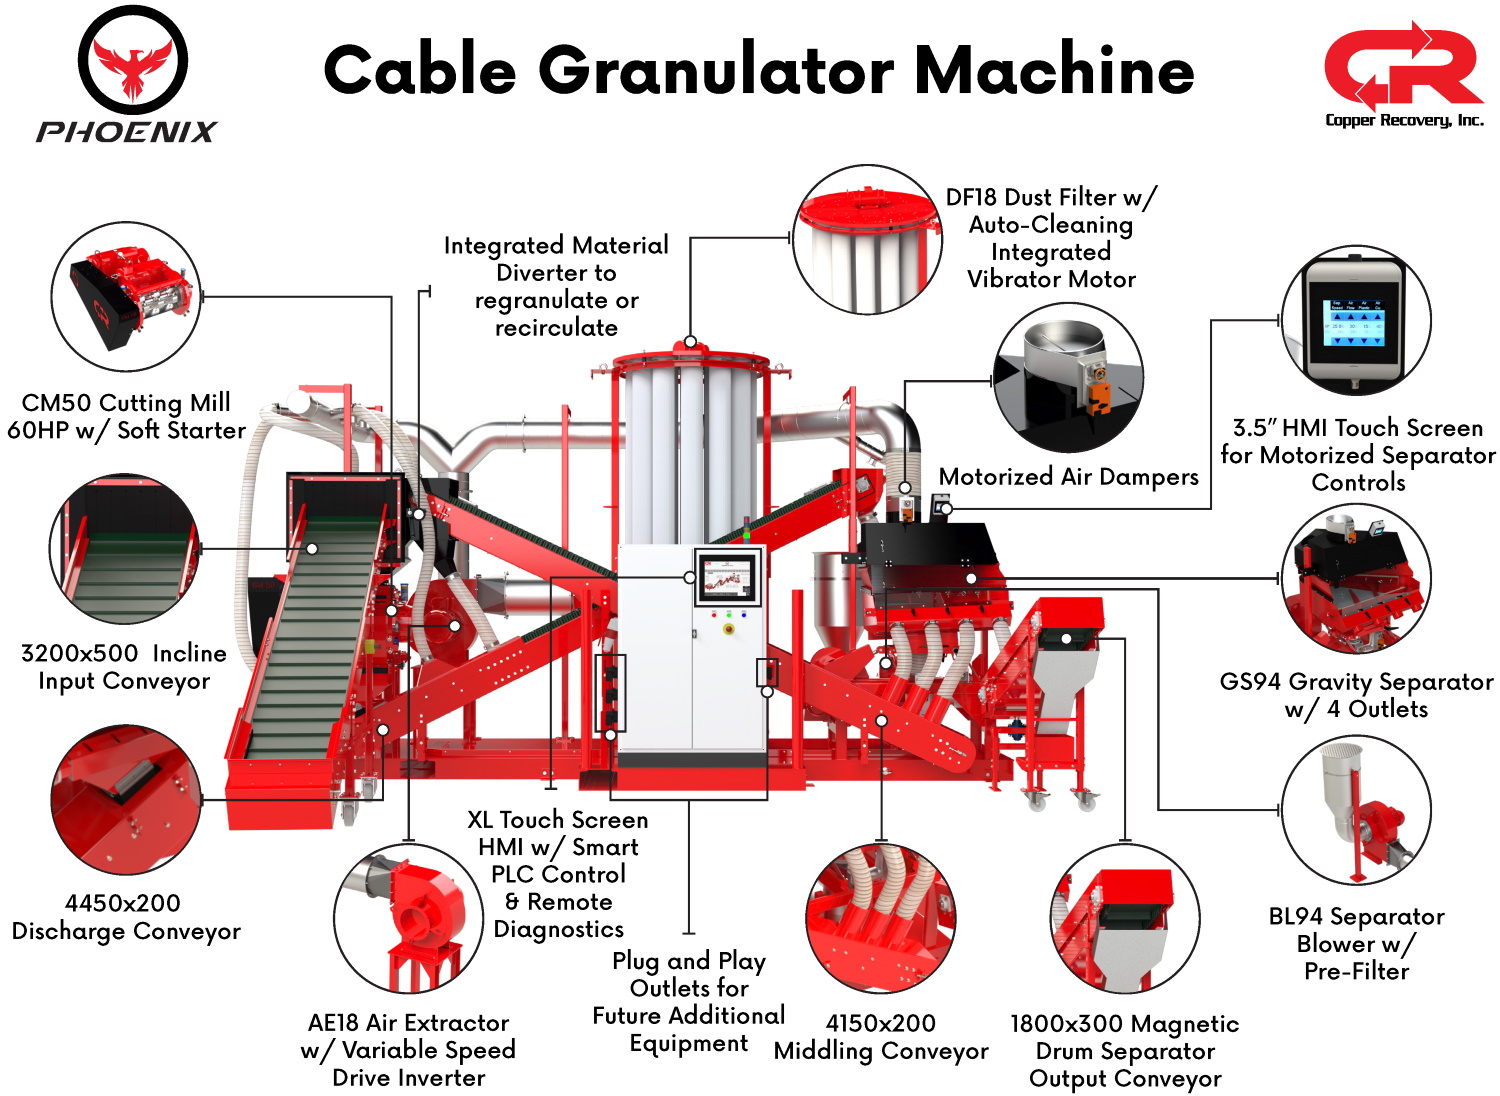 Cable Granulator Machine